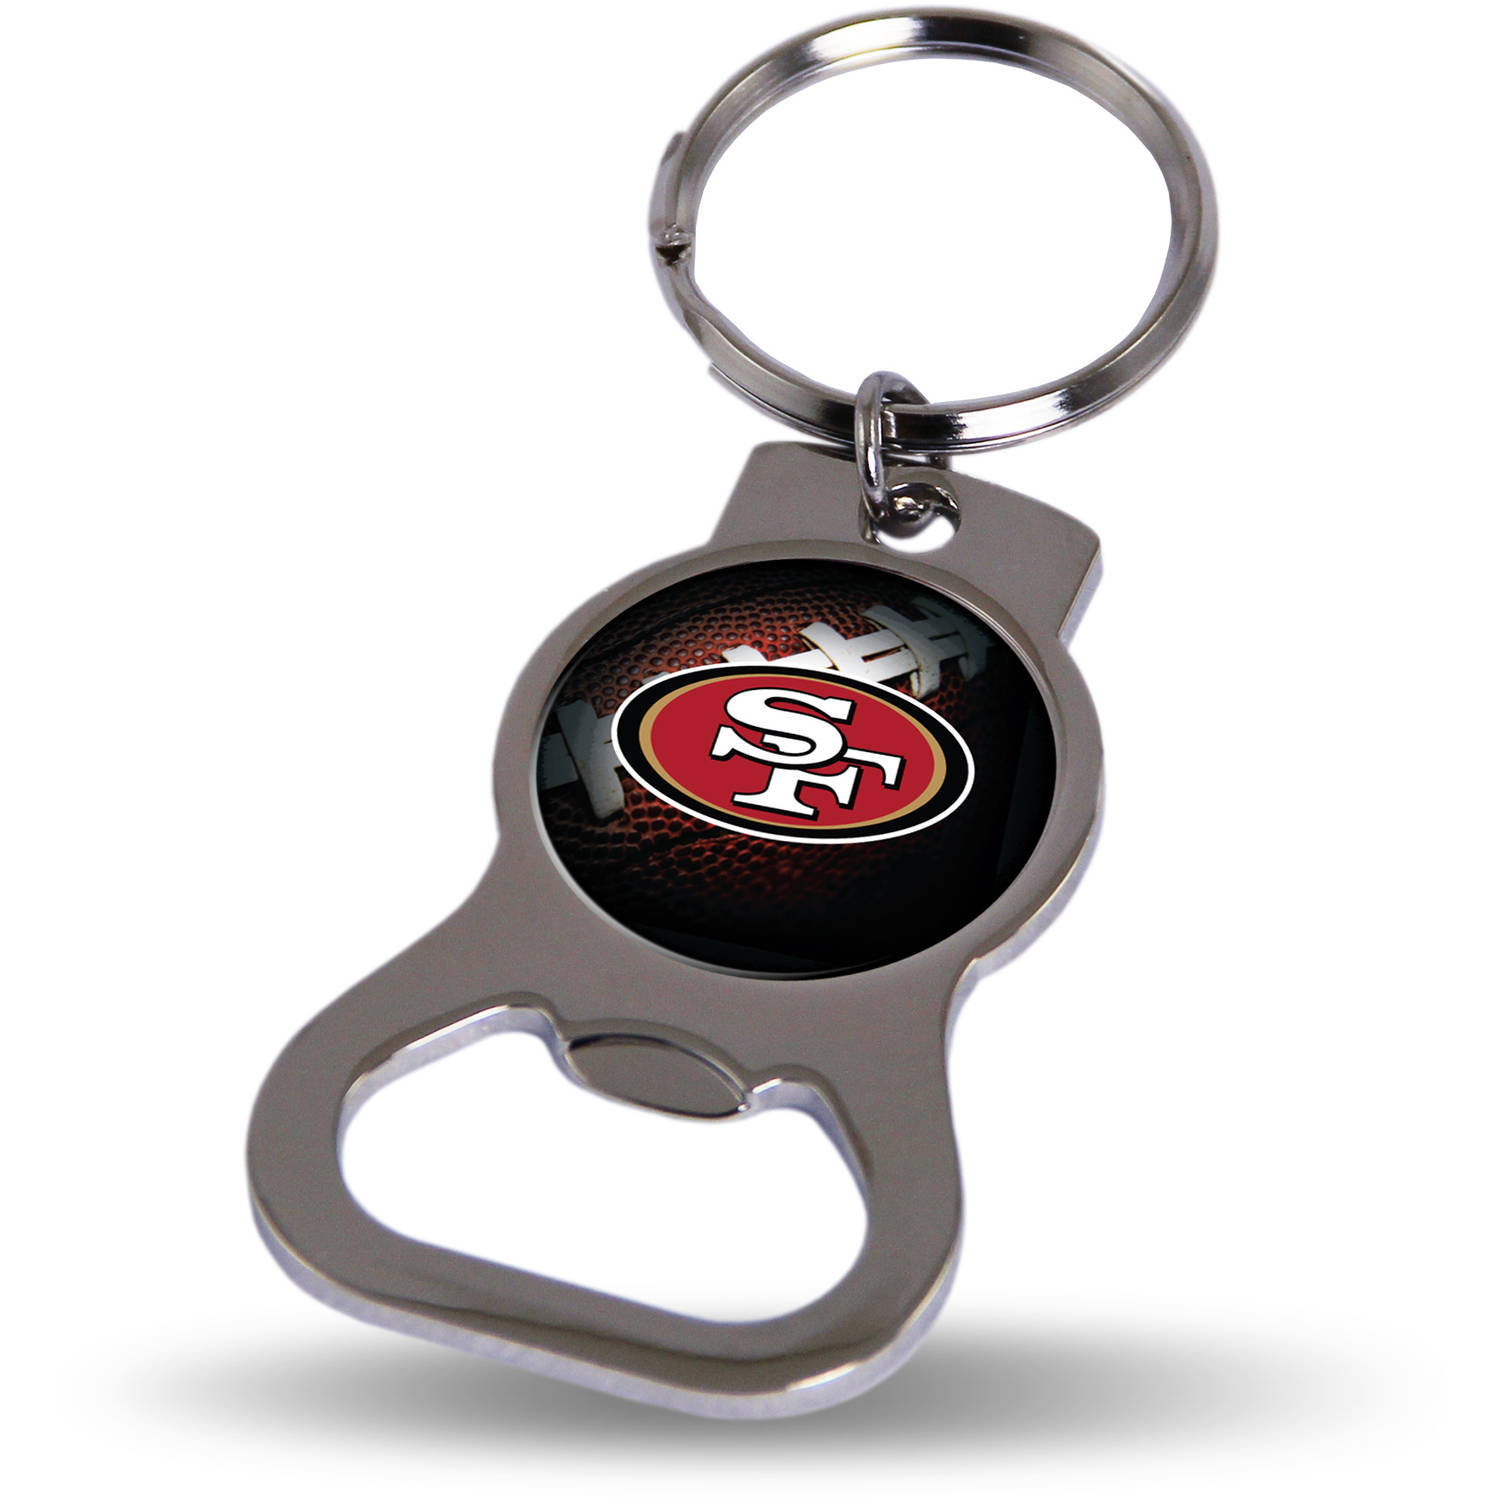 San Francisco 49ers Official NFL 3 inch  Bottle Opener Key Chain Keychain by Rico Industries